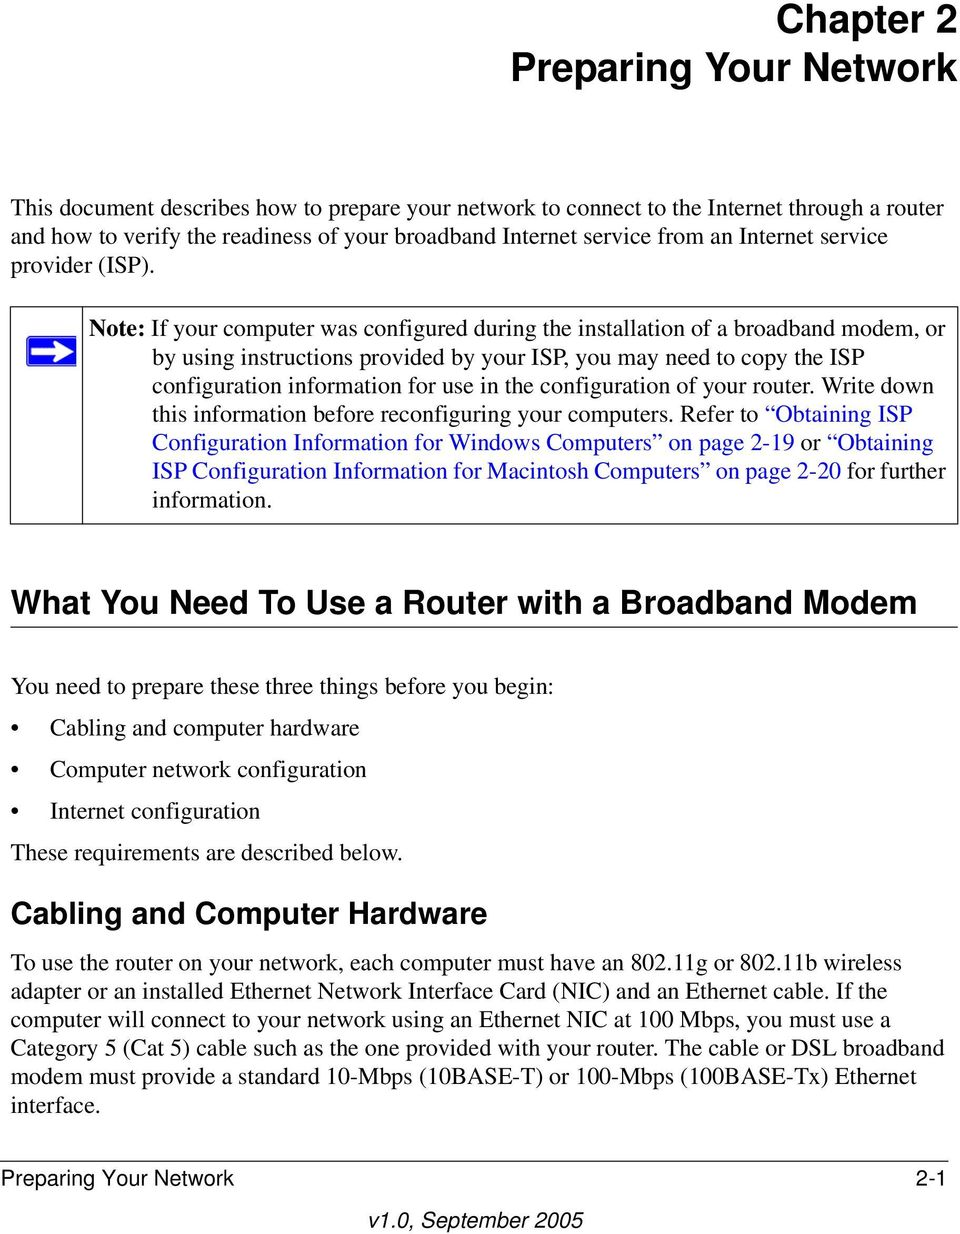 Note: If your computer was configured during the installation of a broadband modem, or by using instructions provided by your ISP, you may need to copy the ISP configuration information for use in